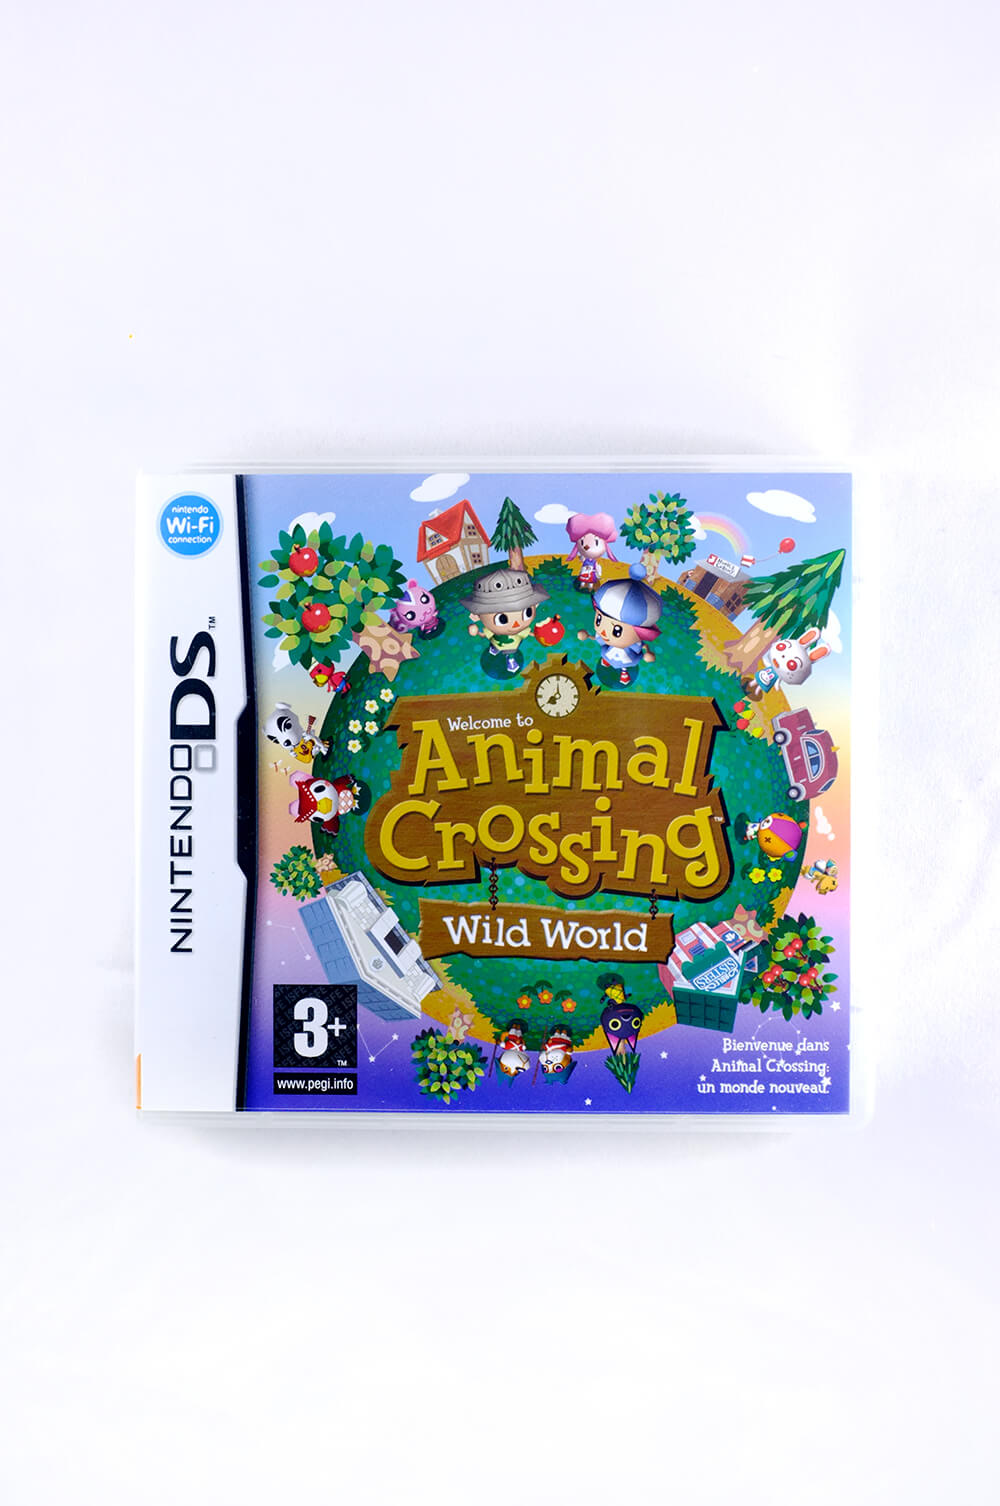 Animal crossing wild world le coffre pixels - Animal crossing wild world hair salon ...